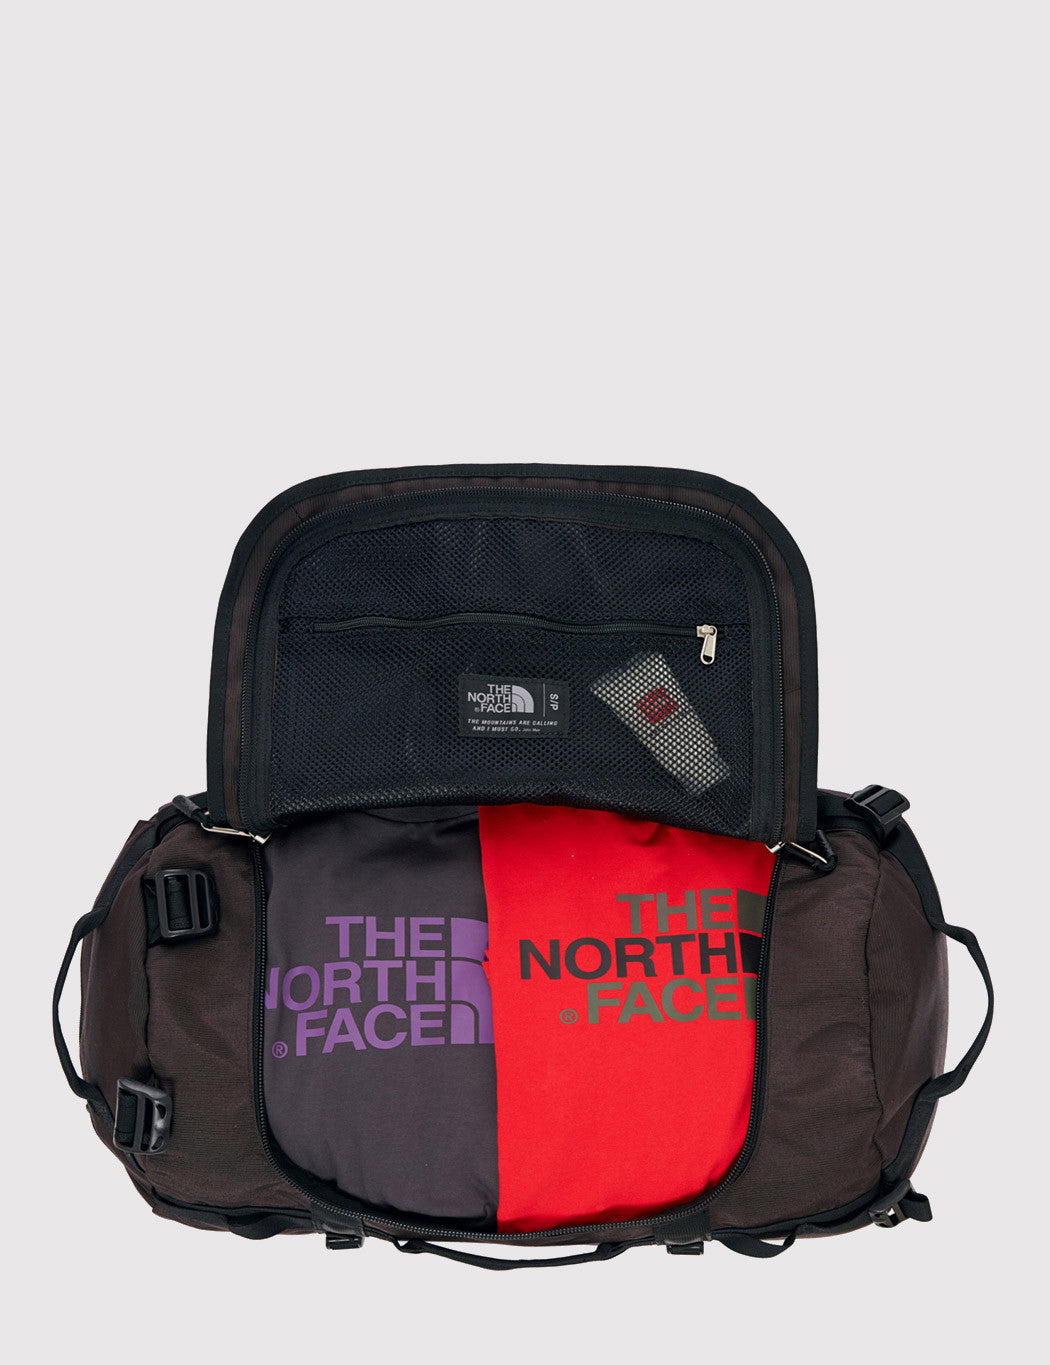 The North Face M2M Duffle Bag - TNF Black